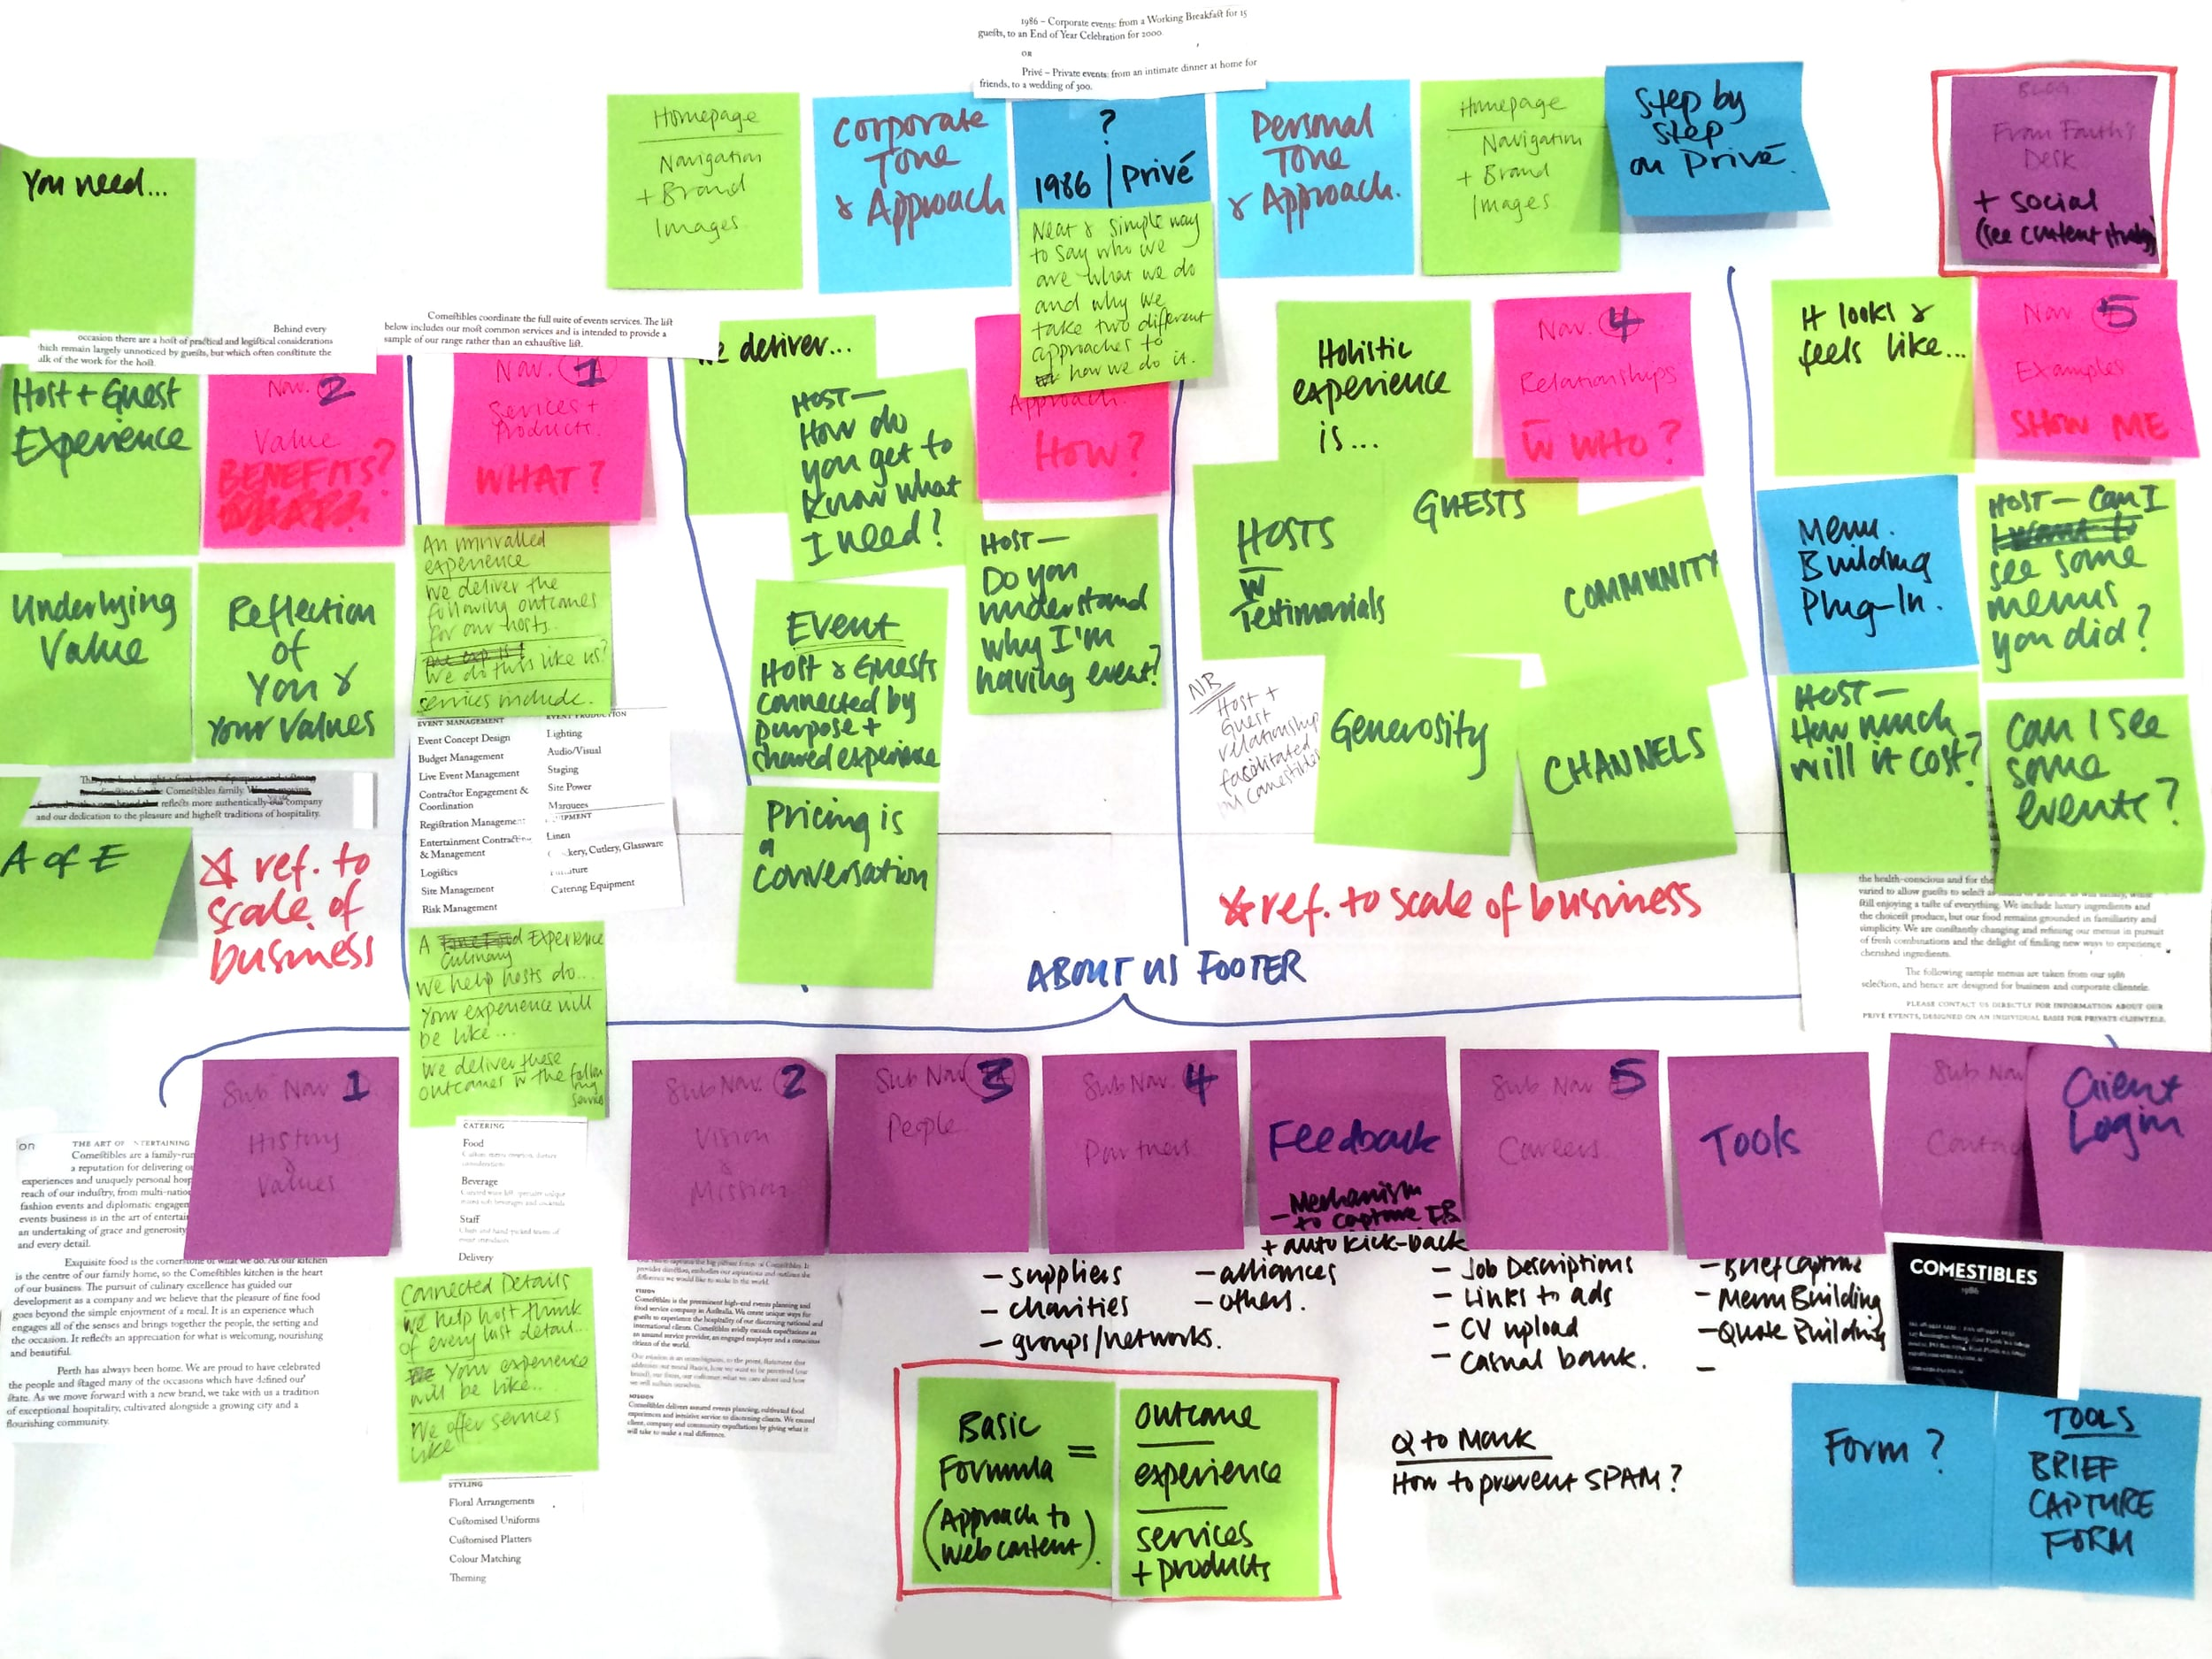 Design process: a journey mapping exercise helps group, filter, prioritise and articulate user questions upon arriving on a website.